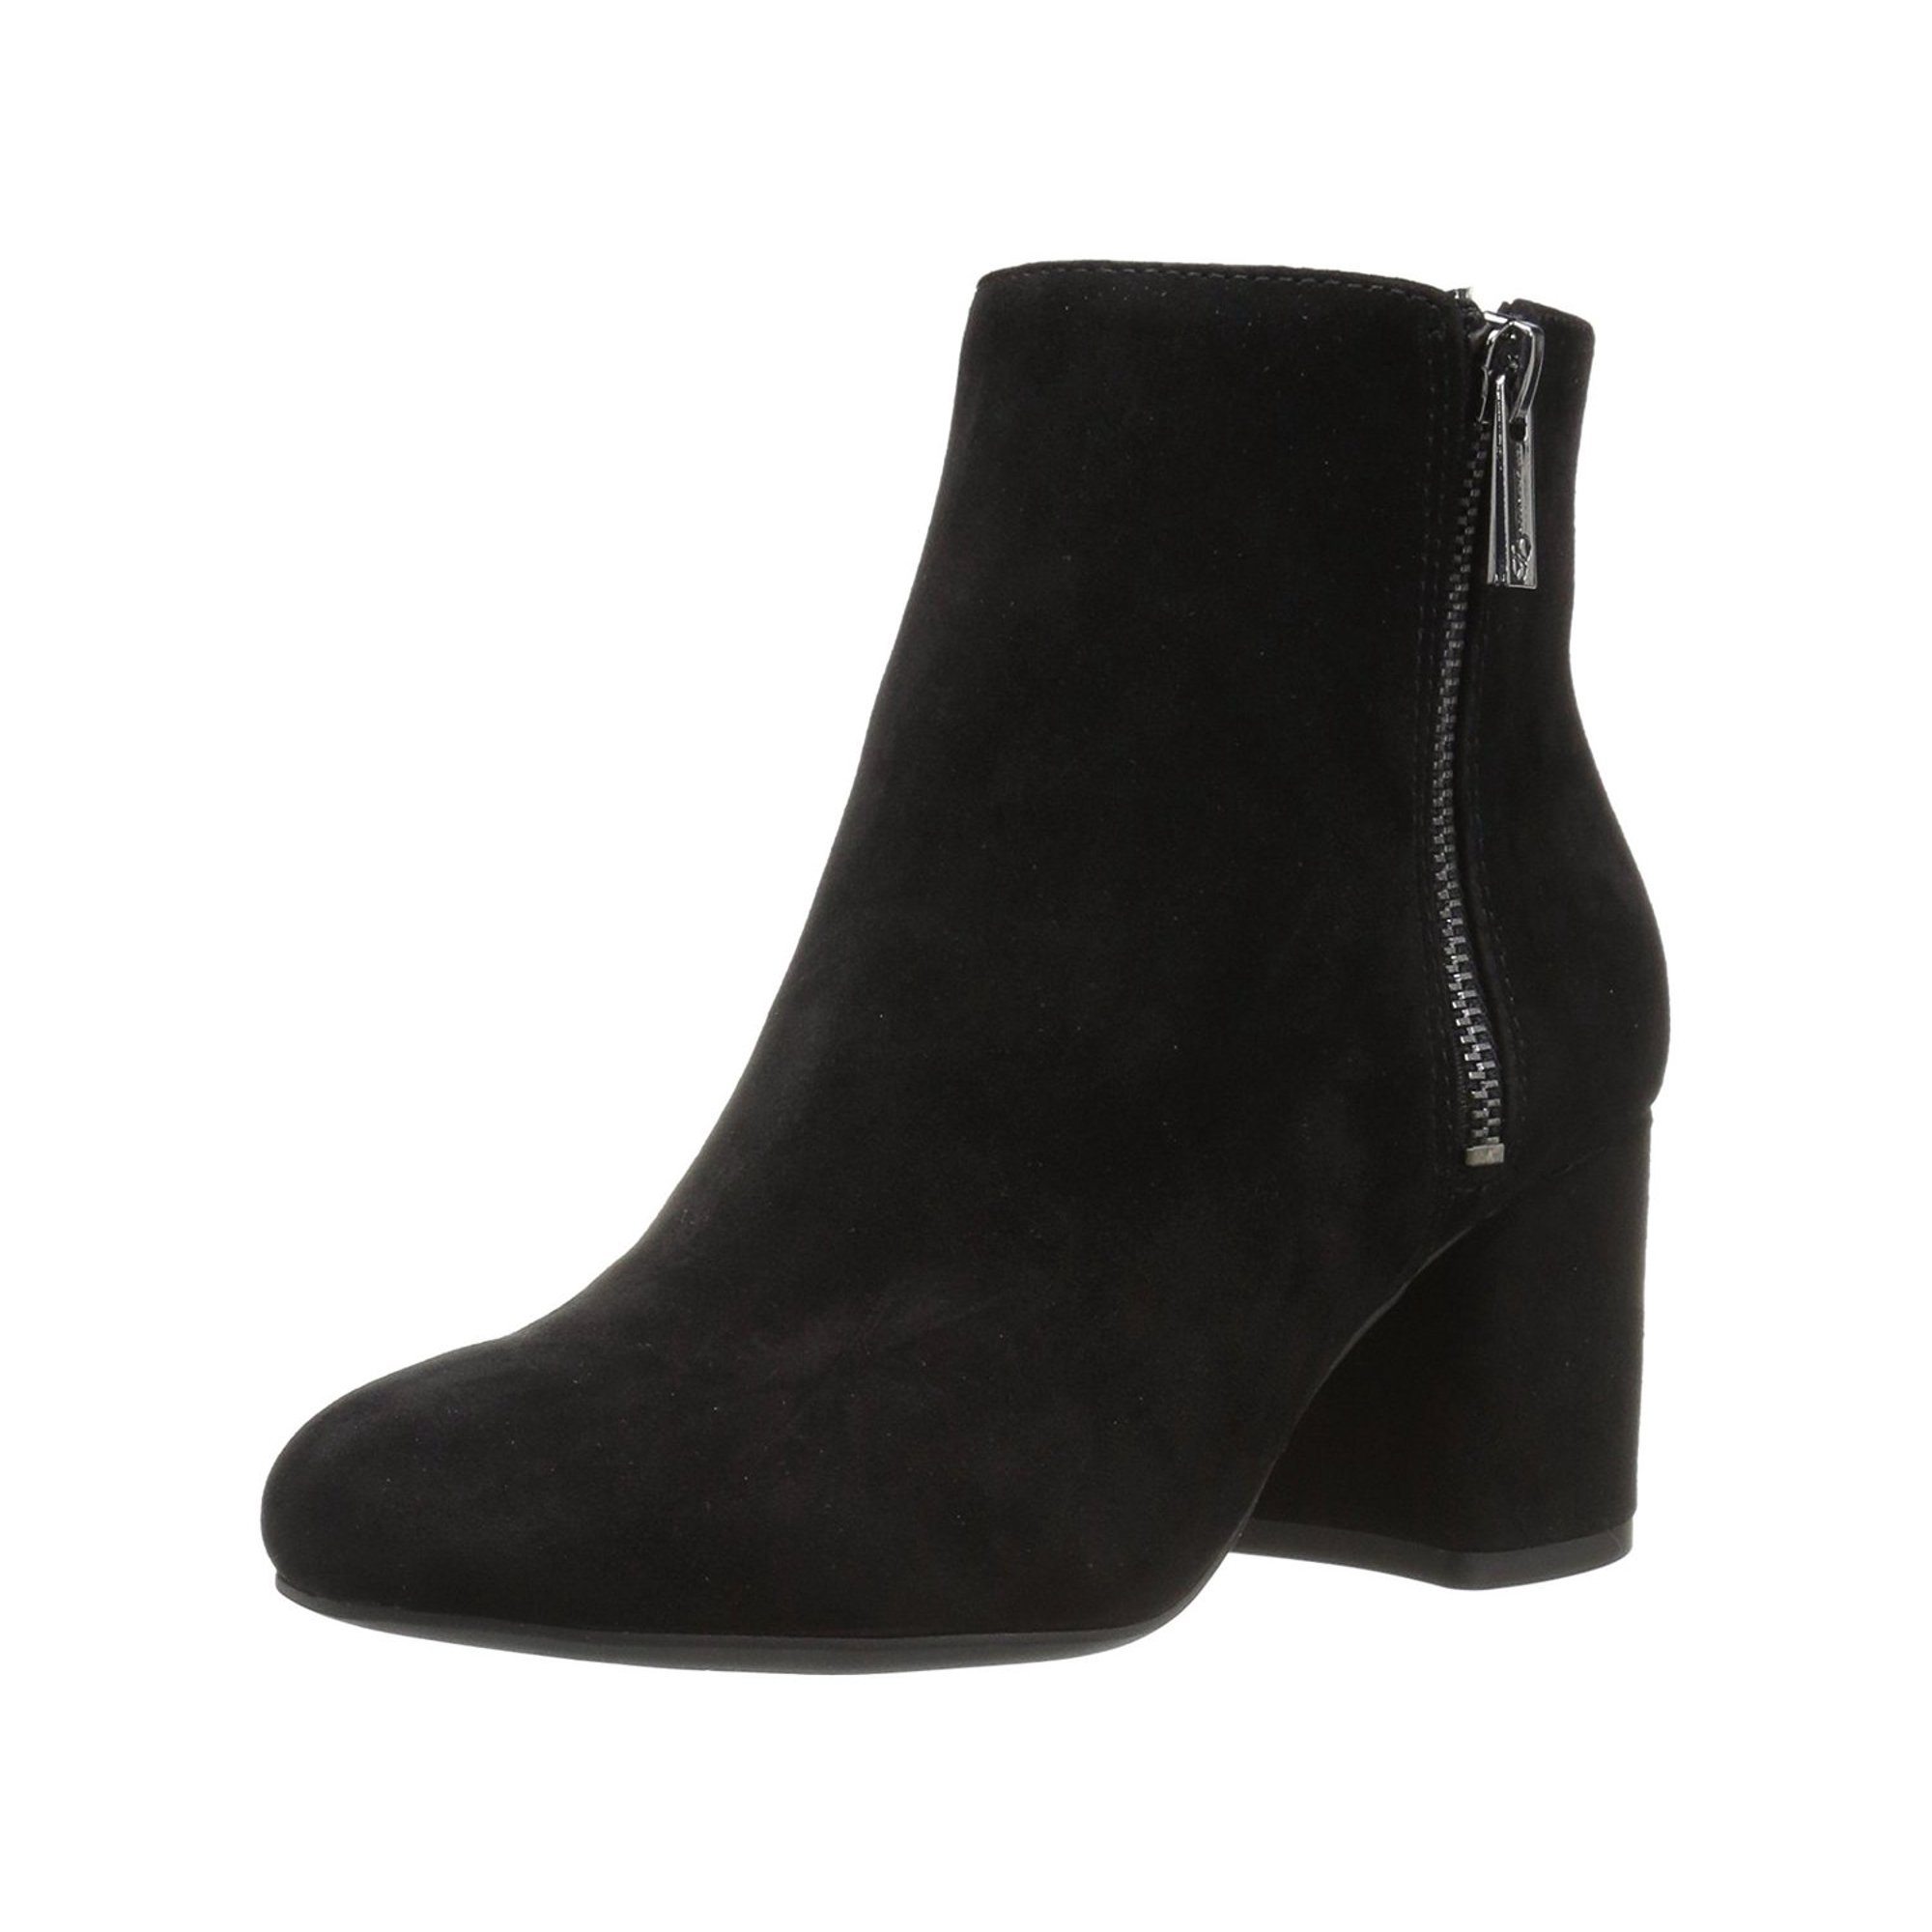 5037c6ccf4a Jessica Simpson Women's Rallee Ankle Boot, , | Walmart Canada